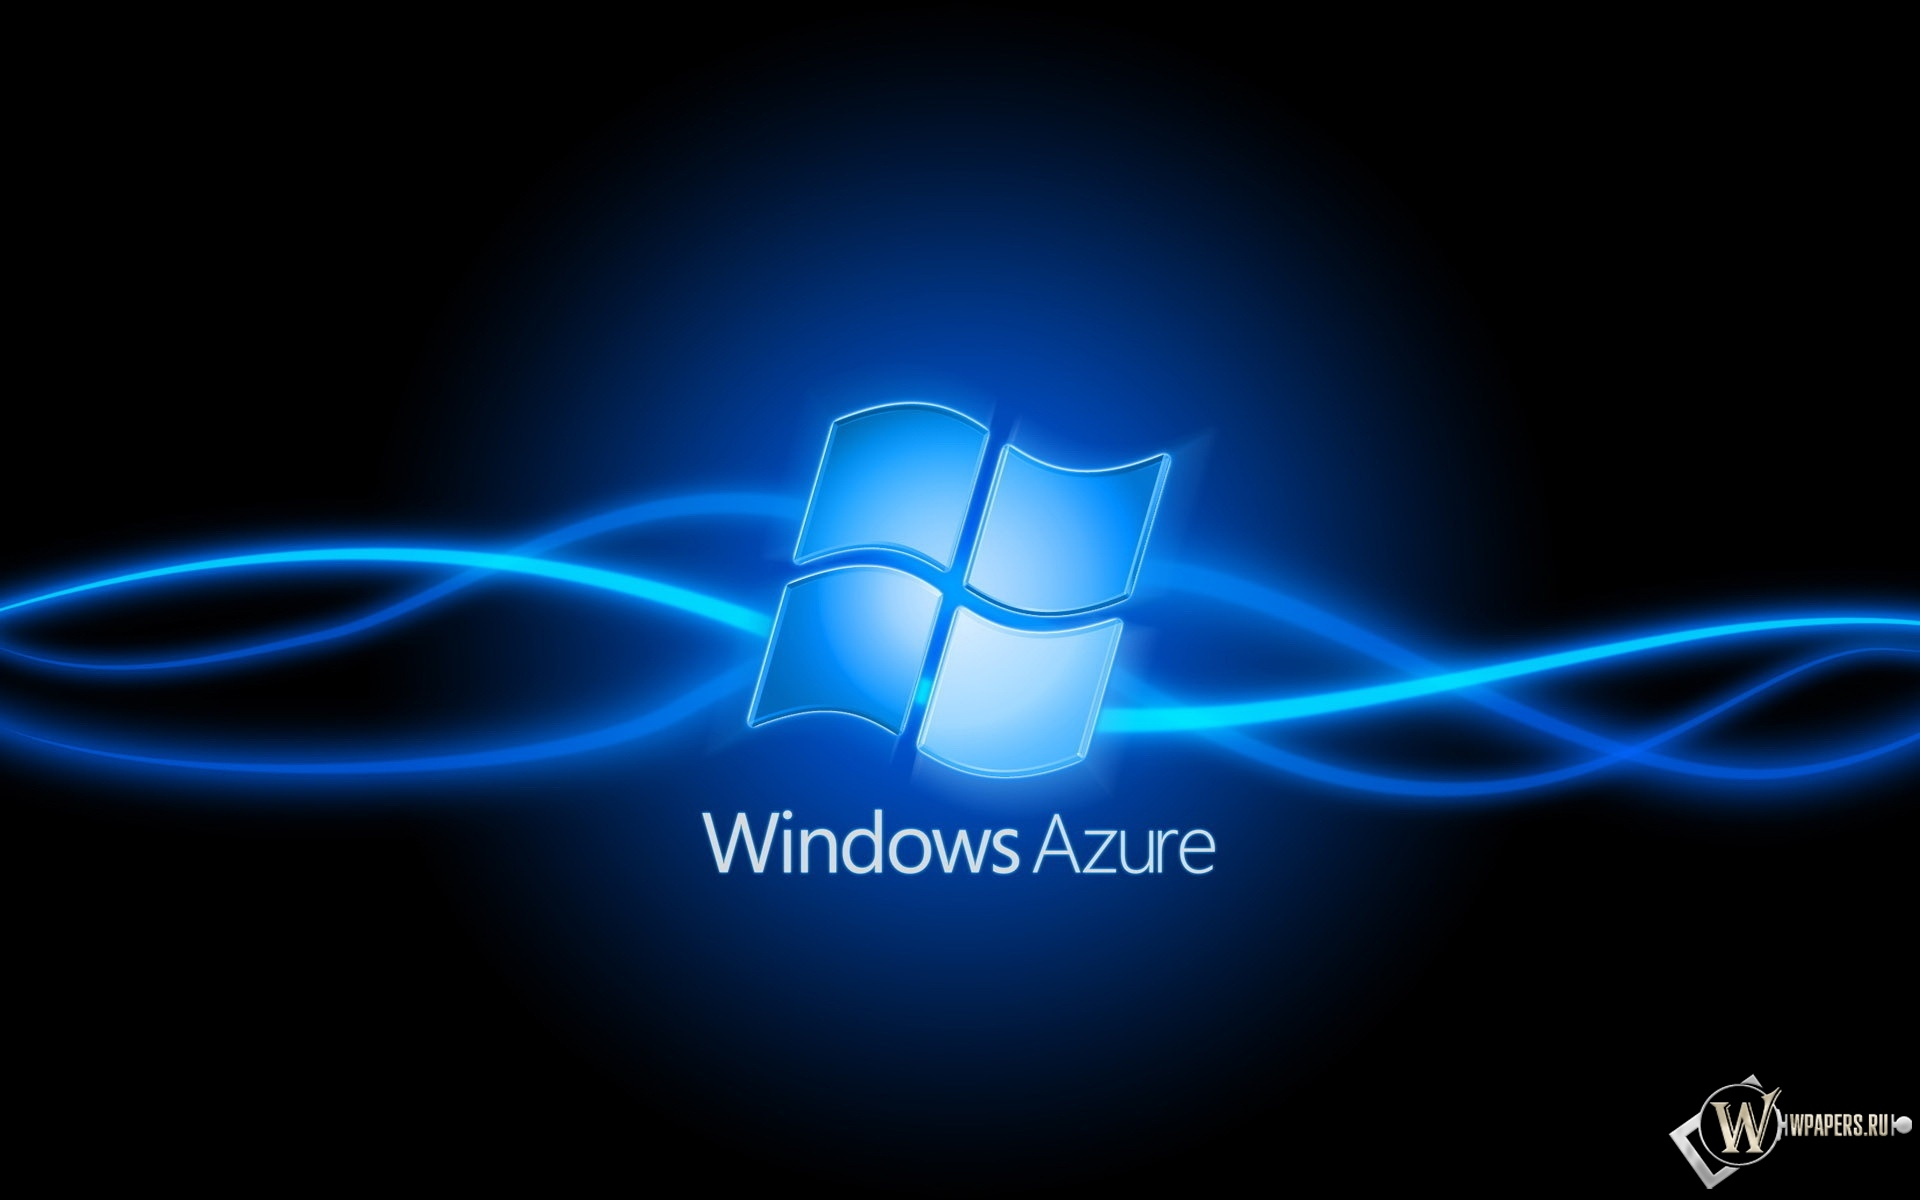 Windows Azure 1920x1200